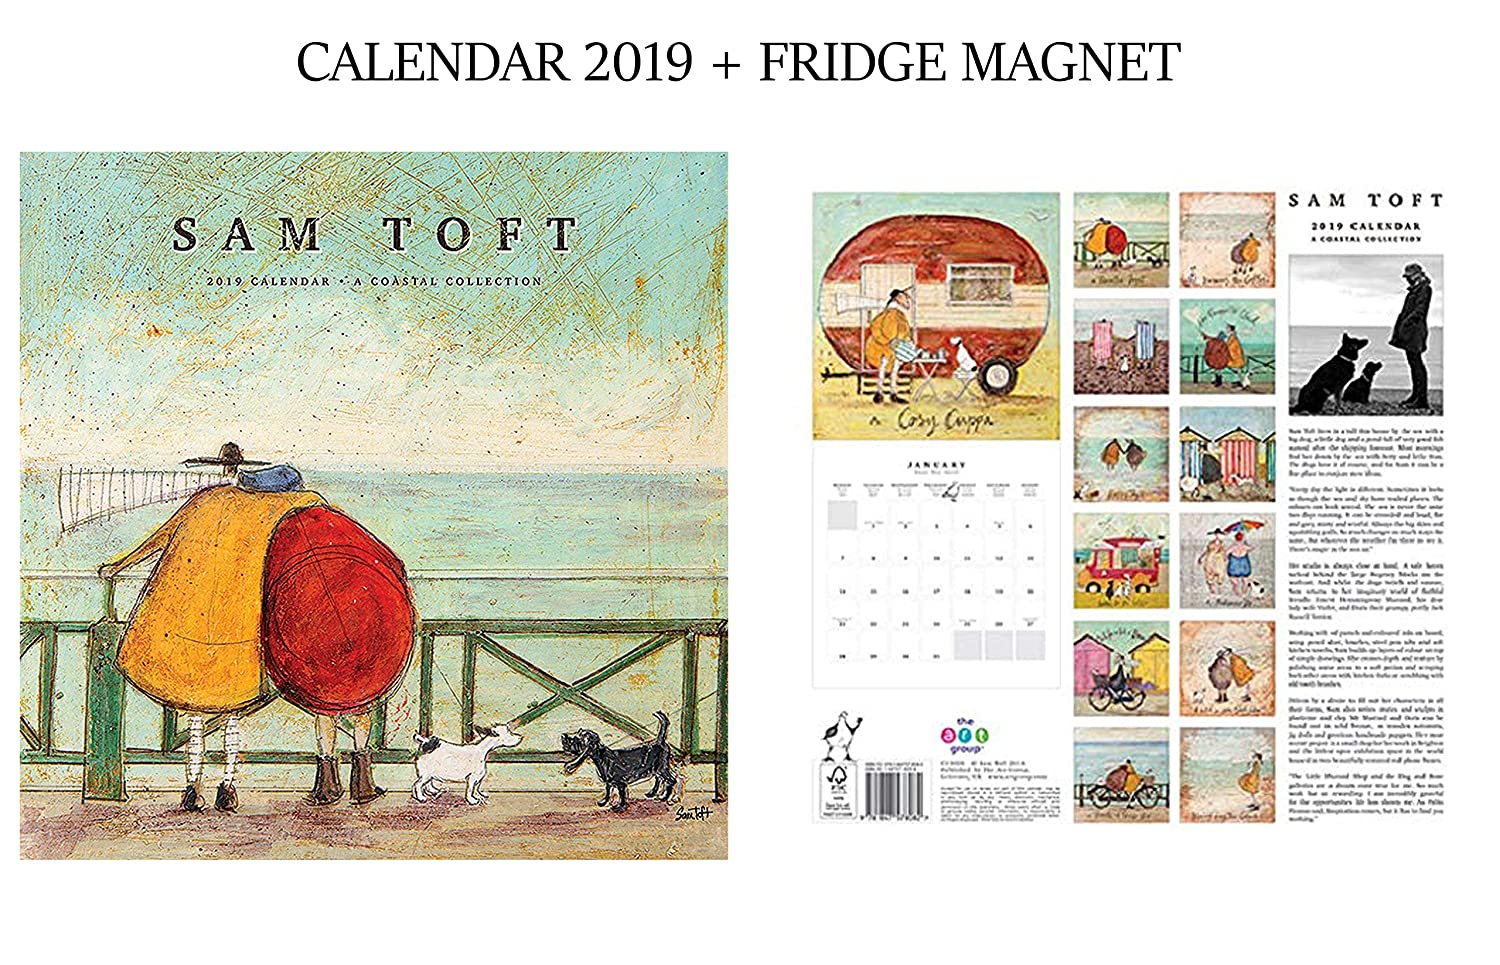 SAM Toft Official Calendar 2019 + SAM Toft Fridge Magnet giftscity